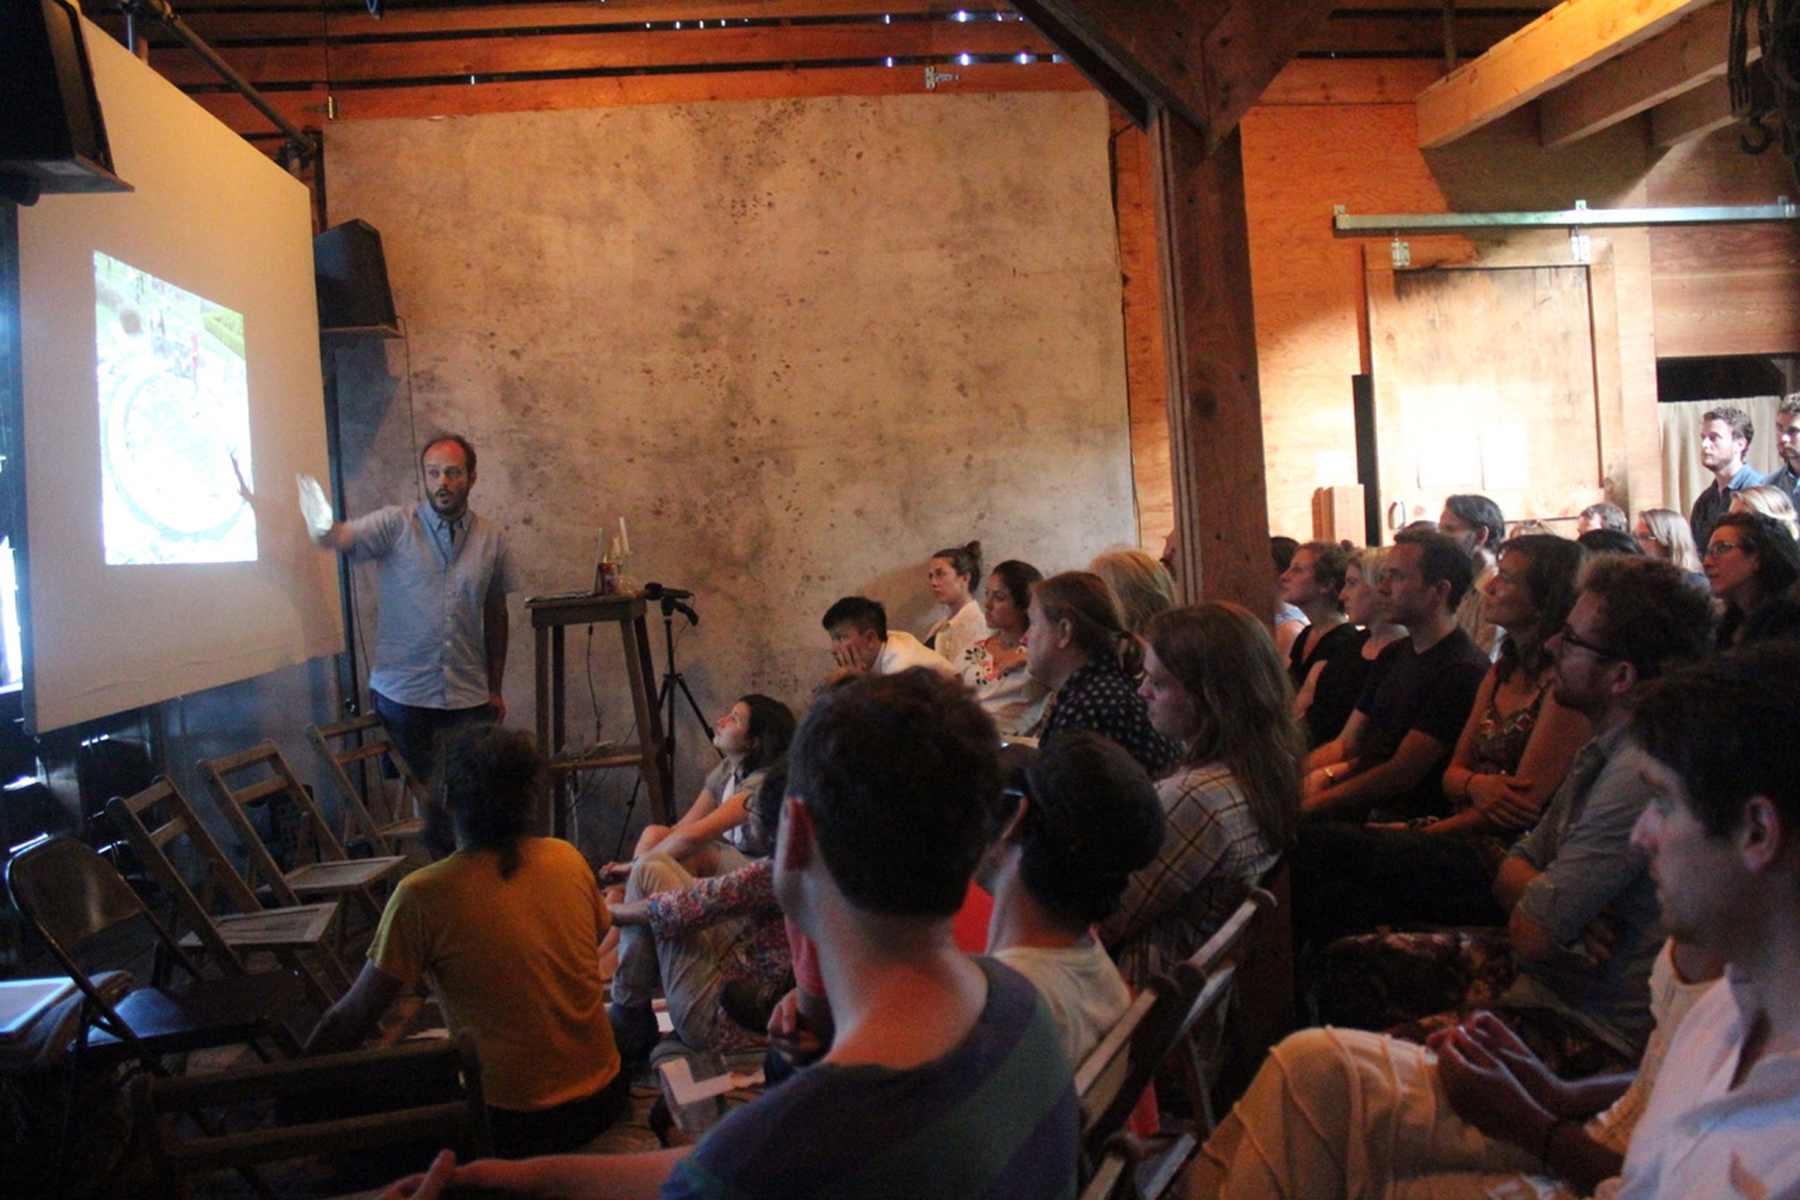 Nils Norman lecturing in the Mildred's Lane Barn Lyceum. Photograph courtesy of Mildred's Lane.